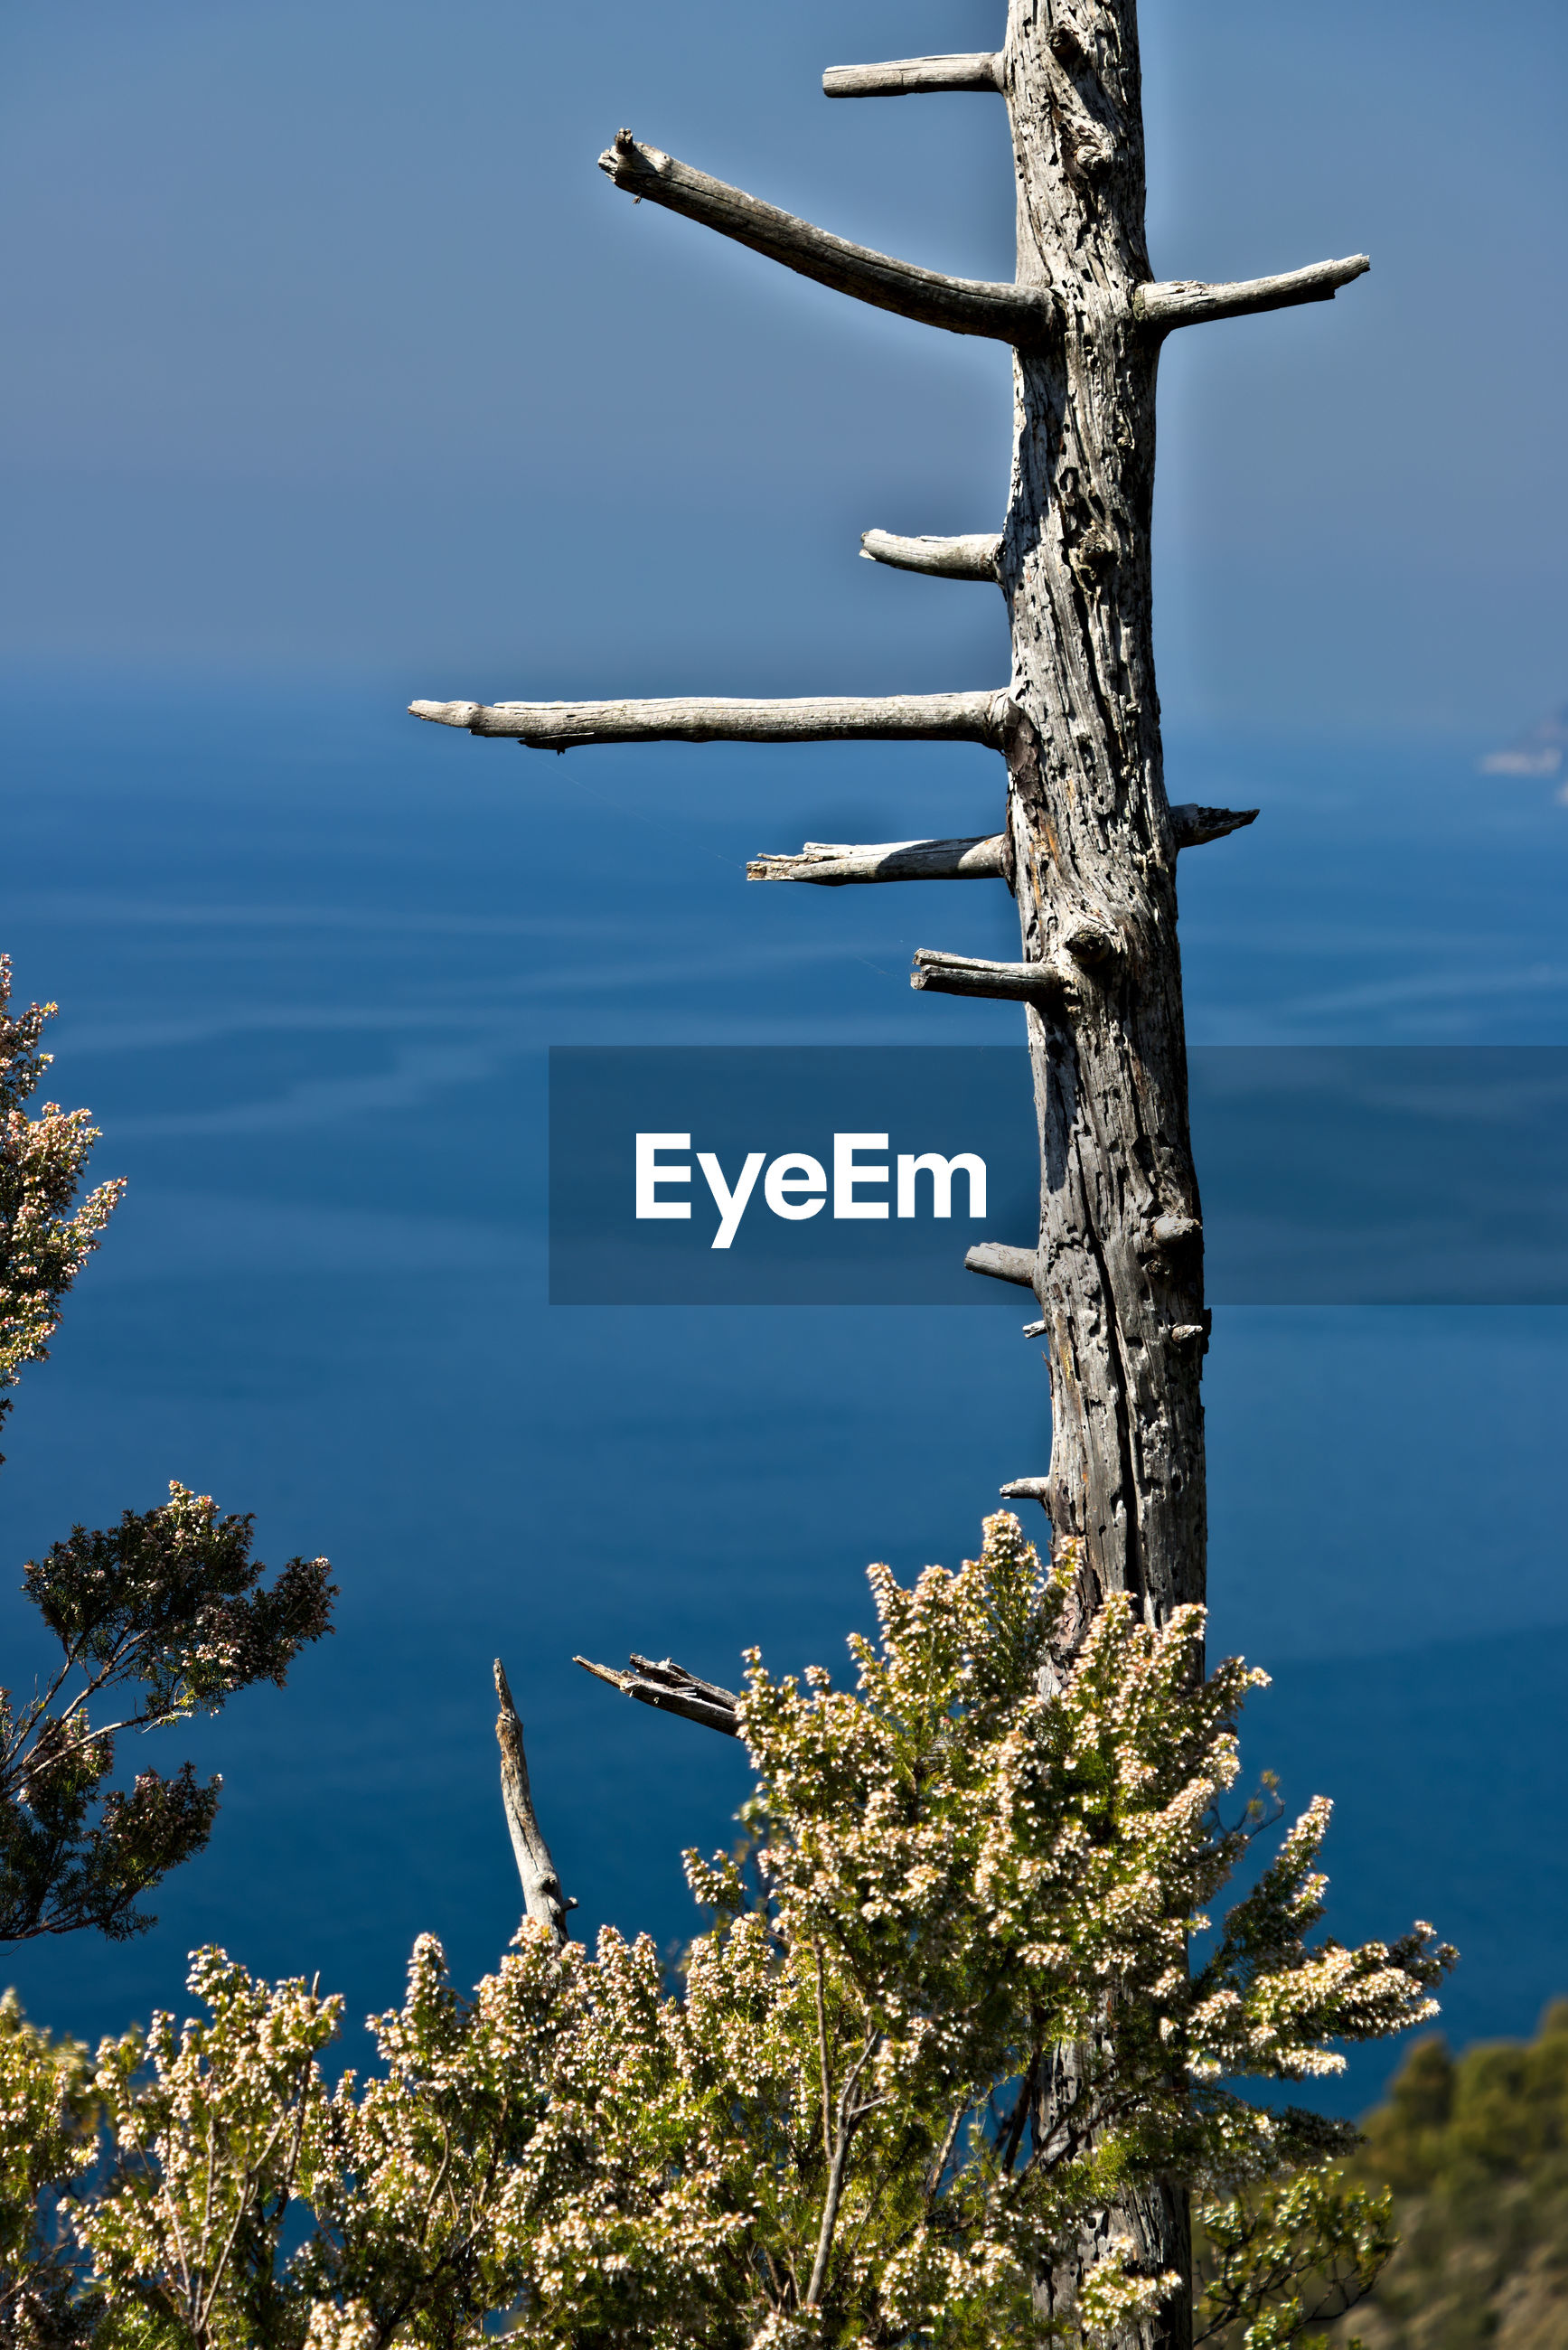 SCENIC VIEW OF TREE AGAINST SEA